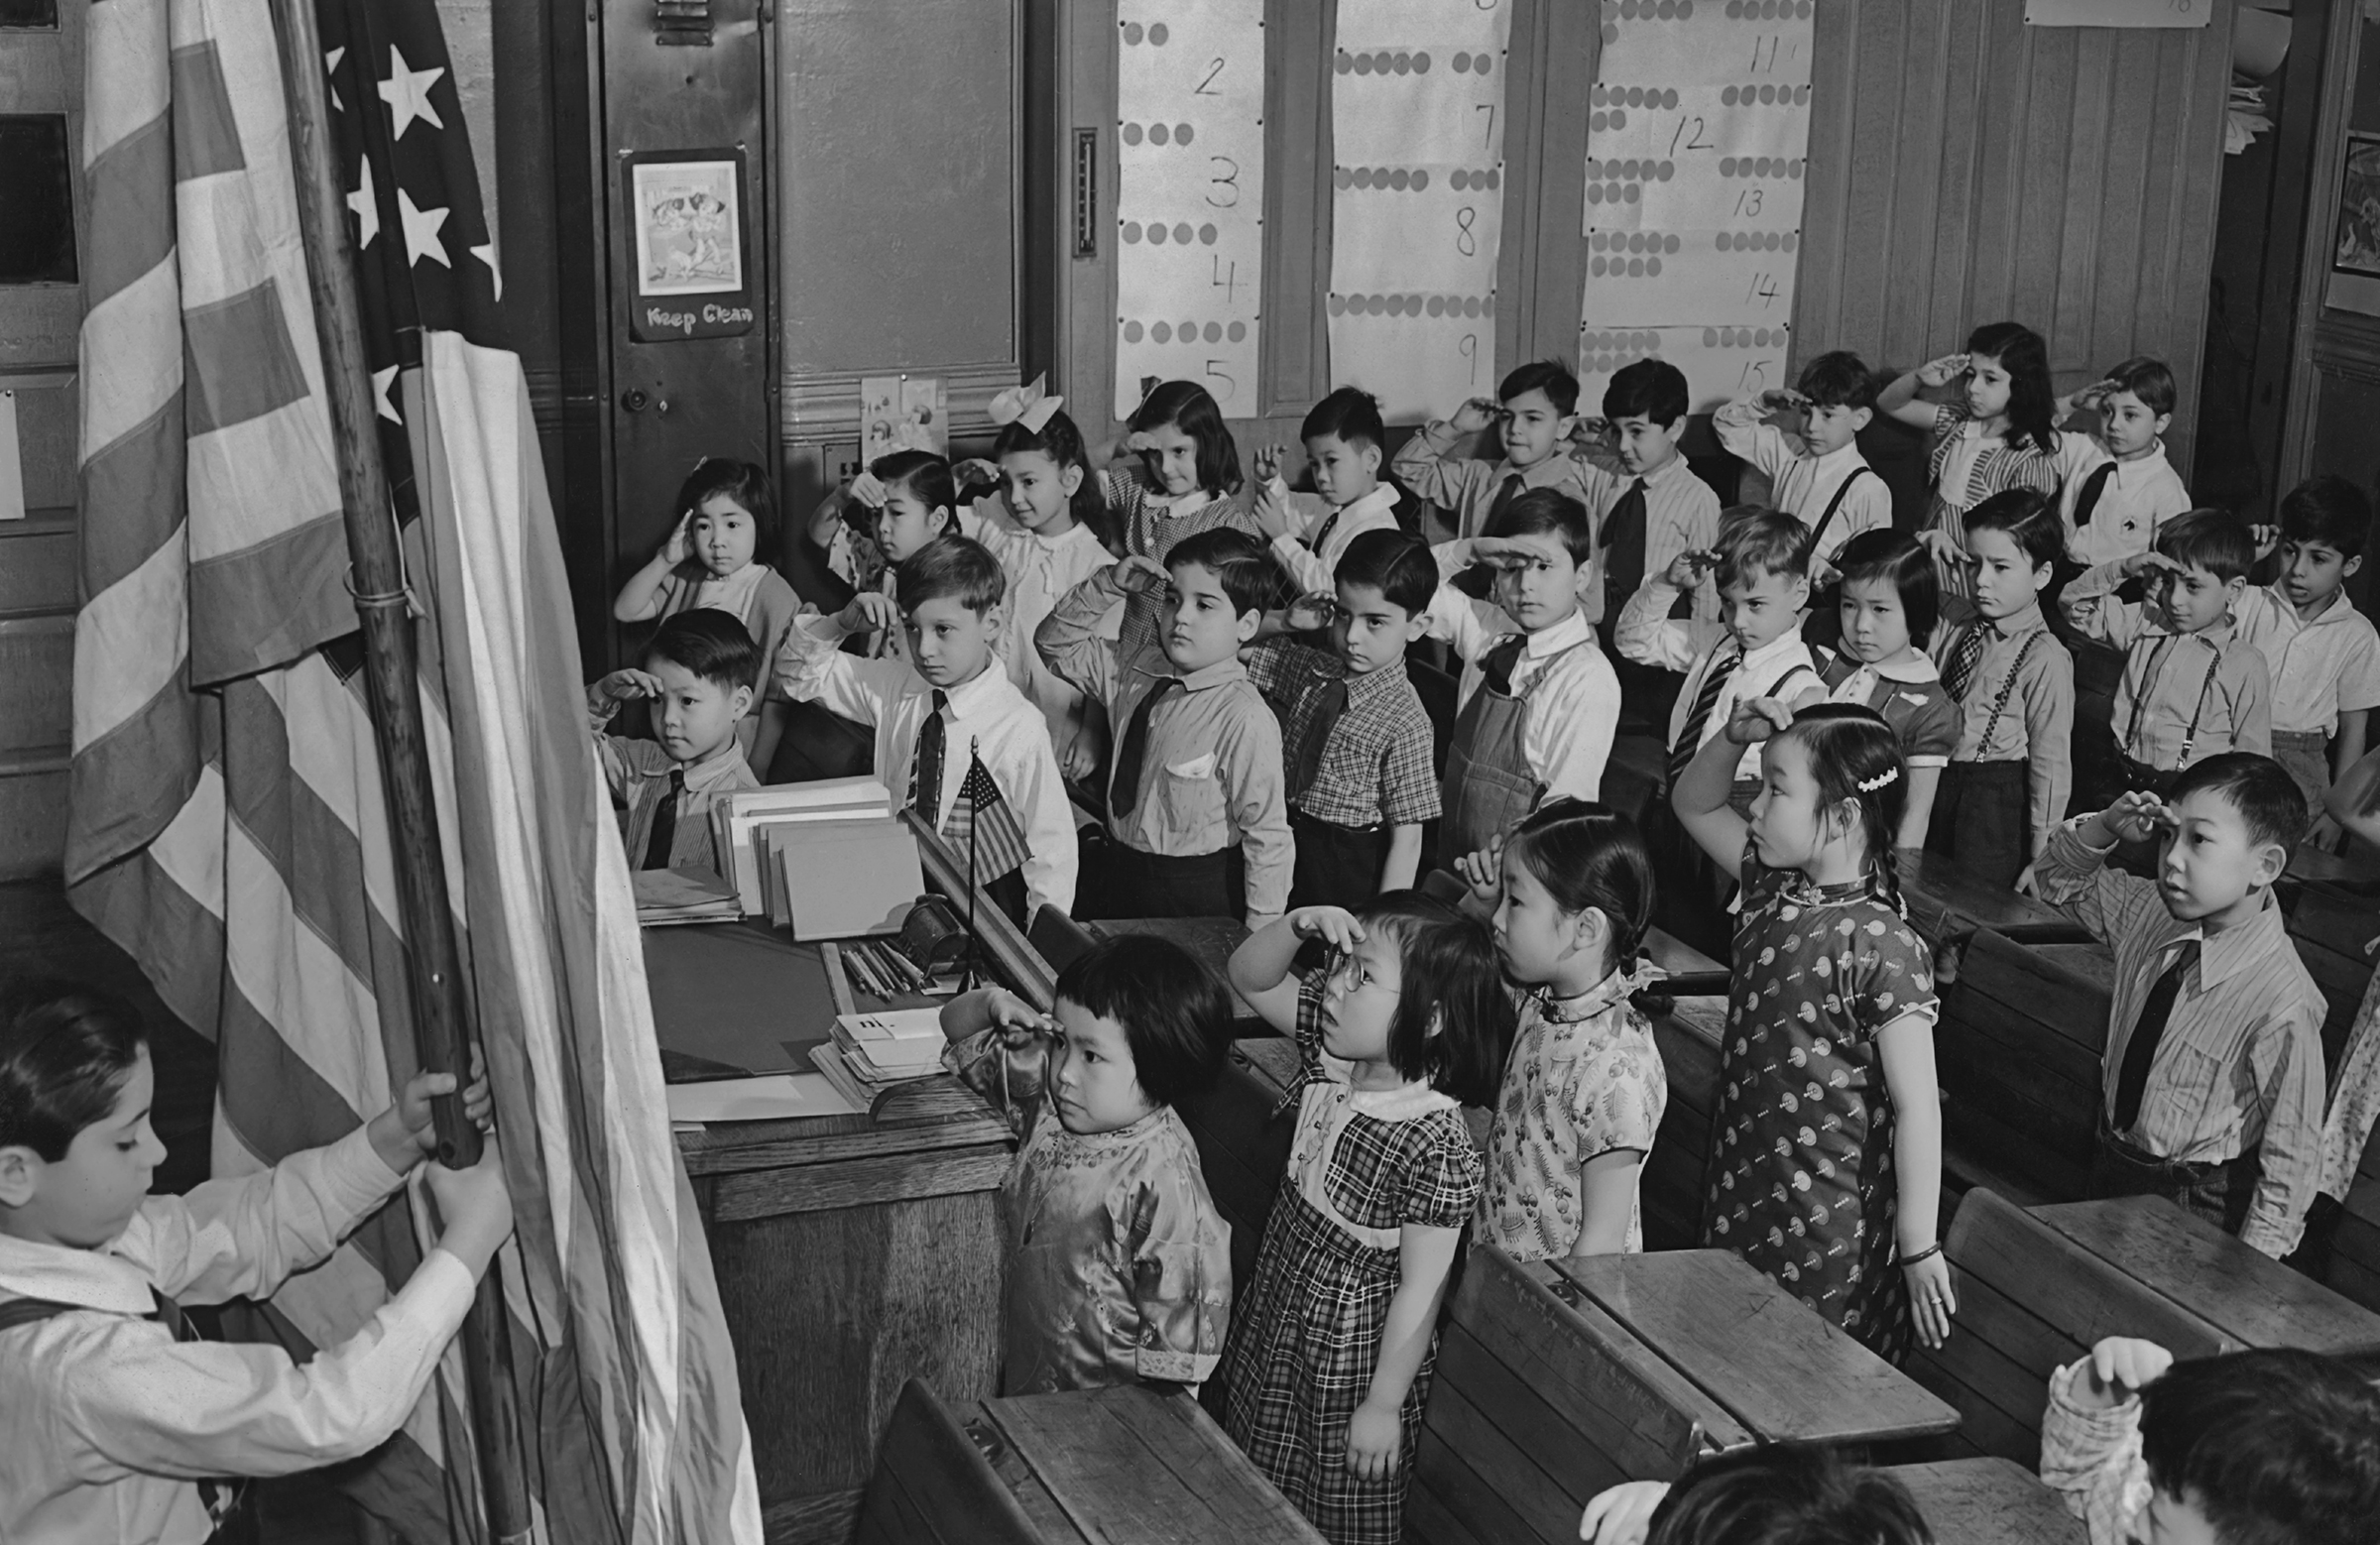 A group of children saluting the American flag at a school in the Chinatown area of Manhattan circa 1960.